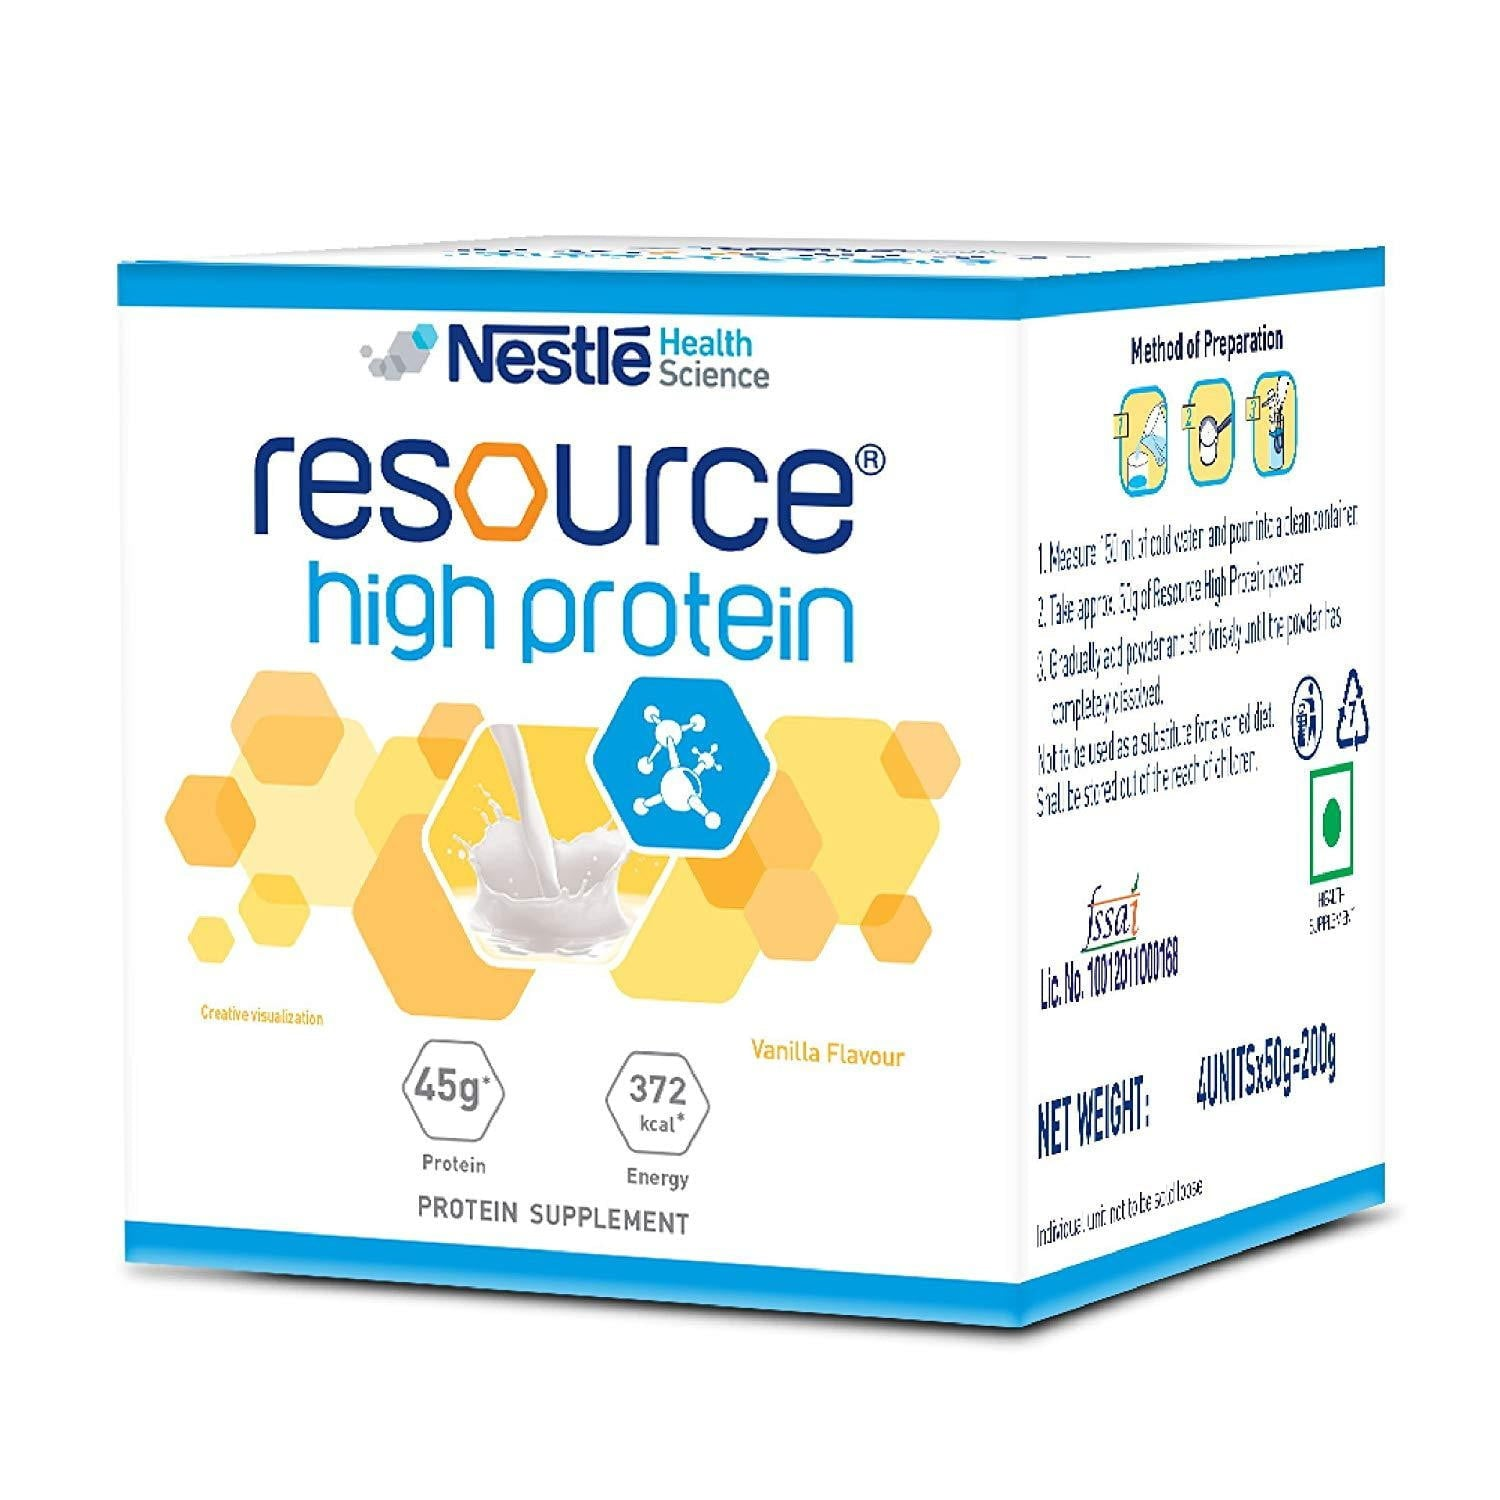 Nestle Resource high protein vannila 200 gm - Buythevalue.in